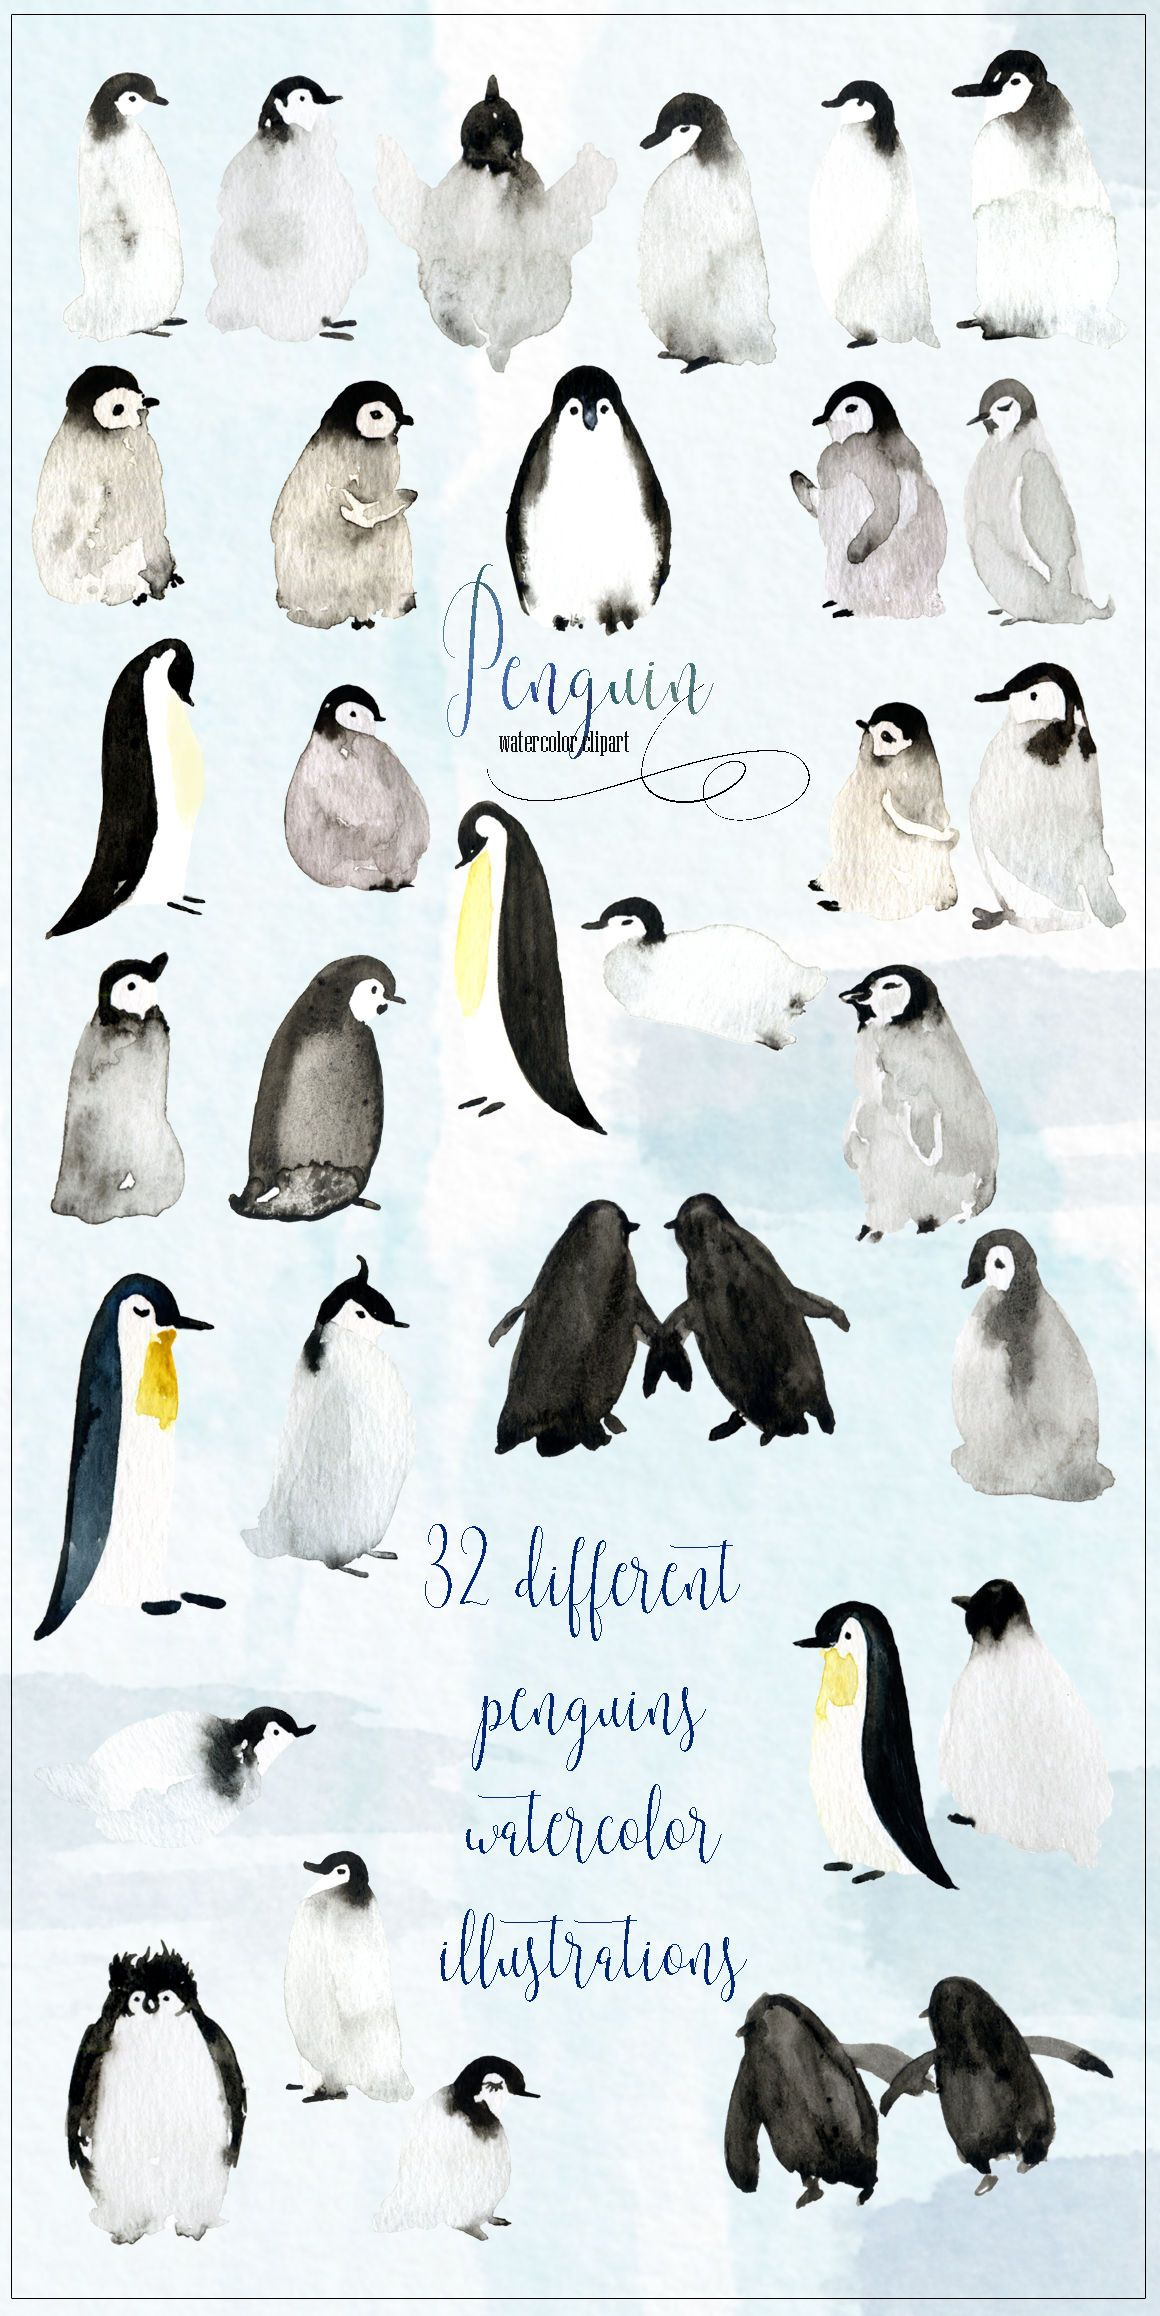 Penguins Watercolor Hand Drawn Illustrations By Labfcreations Thehungryjpeg Com Hand Sponsored Penguin Watercolor Watercolor Animals Penguin Illustration